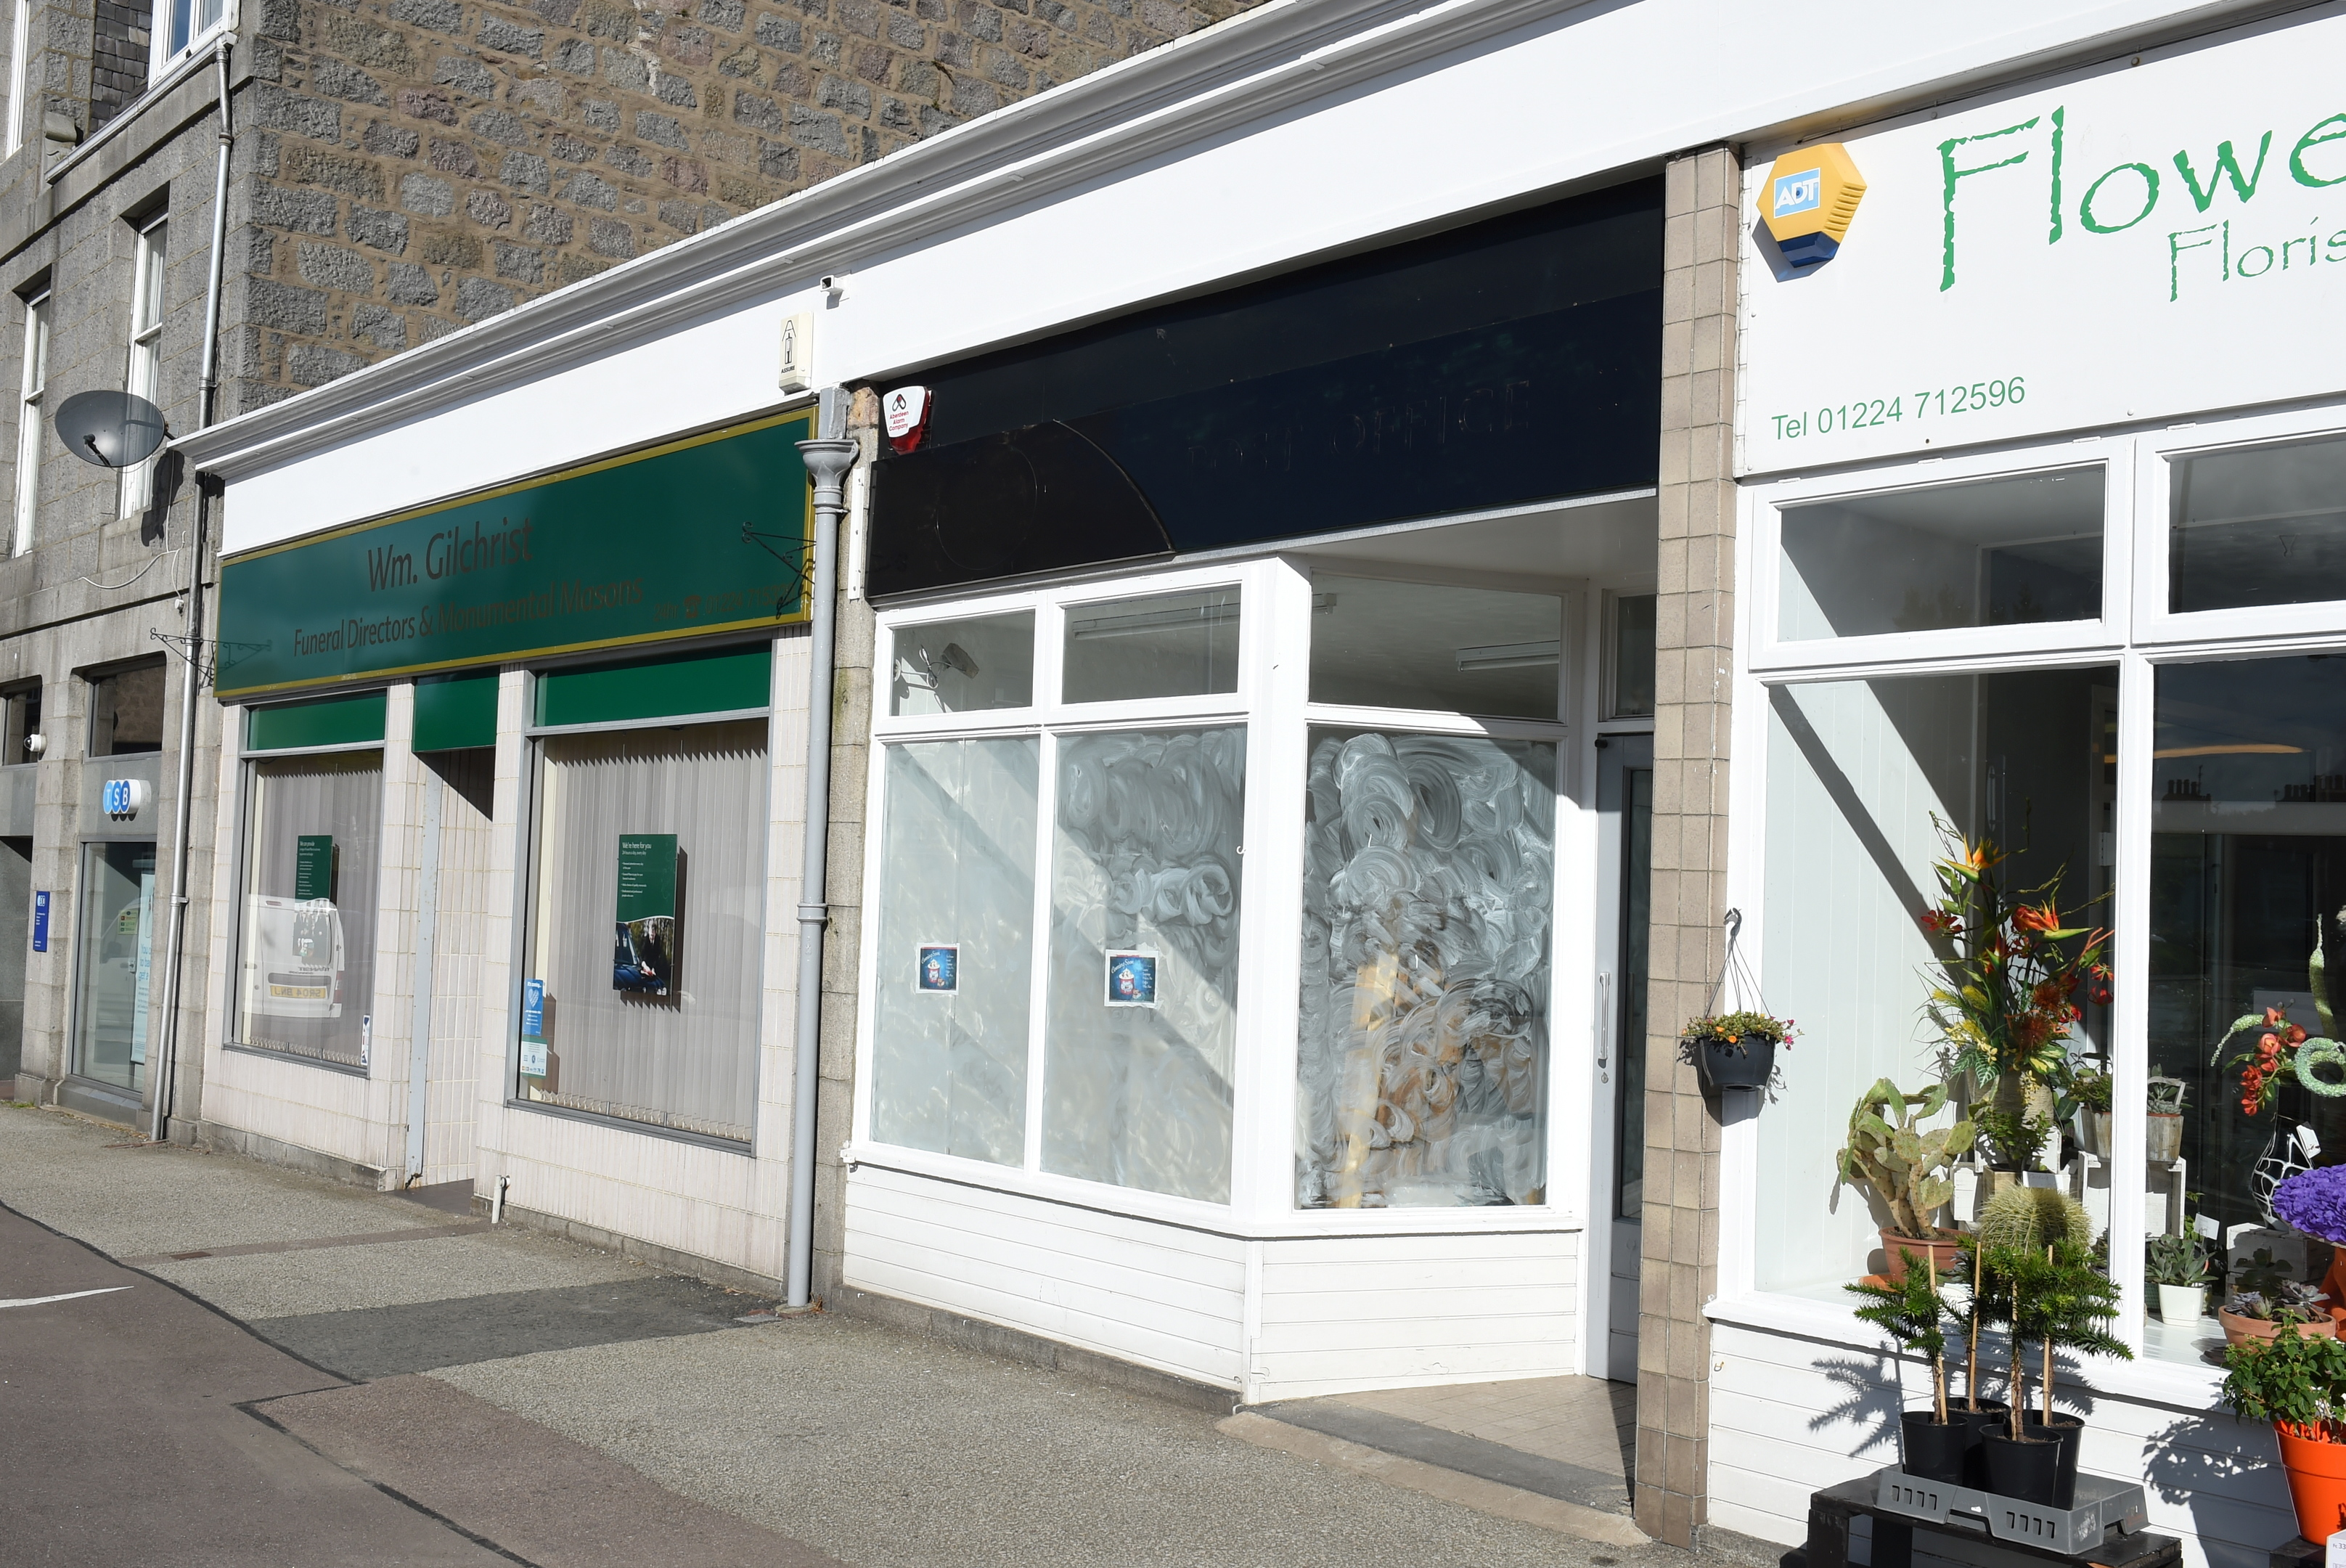 Sweet Scoops will take up premises in the old Post Office shop in Bucksburn.